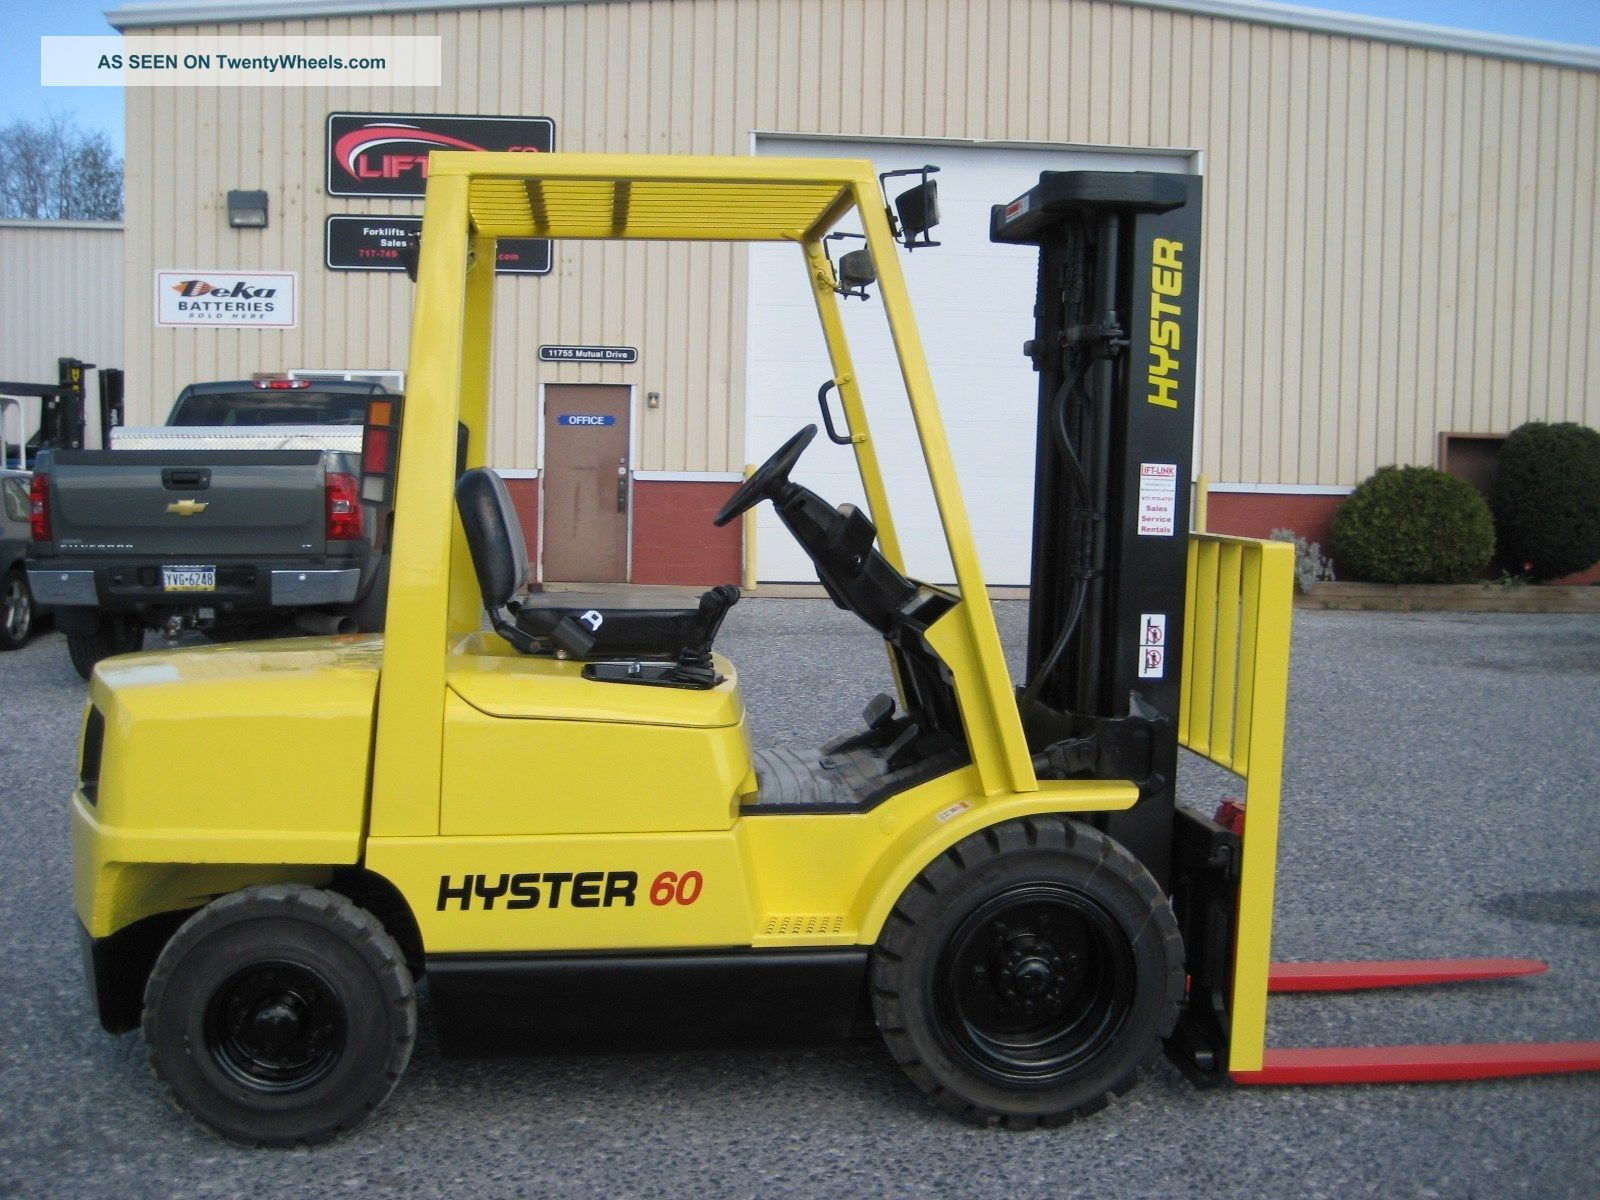 11537971 Rc Armored Car 1 16 Scale further 10285 Hyster forklift h60xm furthermore gardentrucking besides Truck8x4lowloader as well 272007282575. on rc dump trucks with trailers